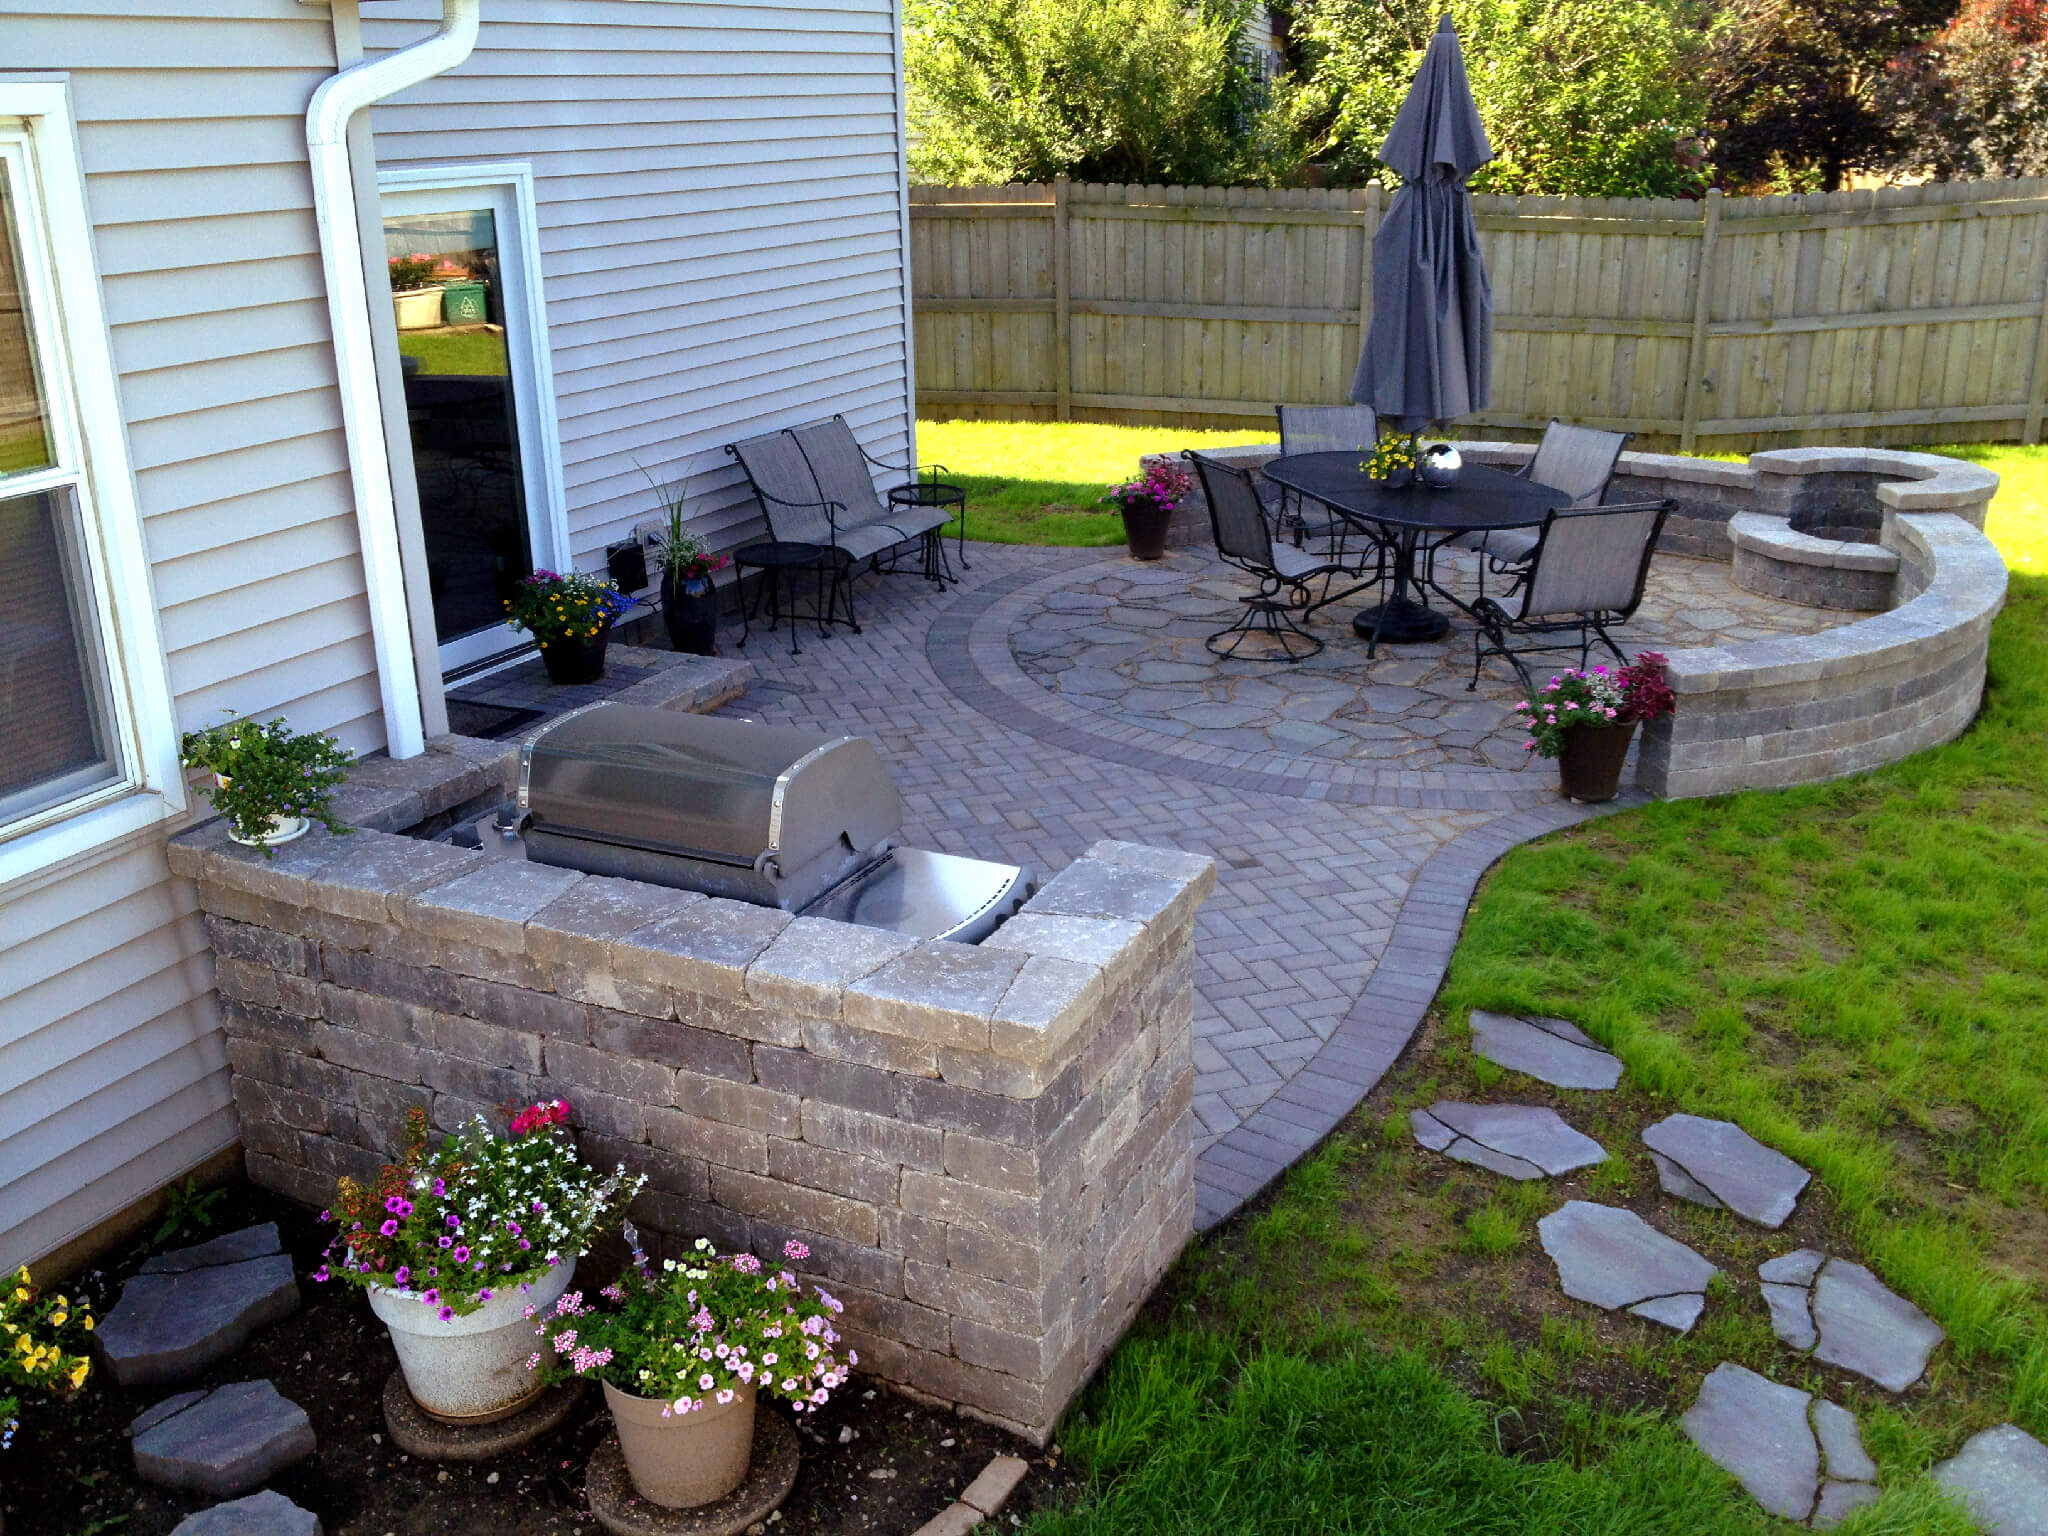 Patio with outdoor kitchen and fire pit